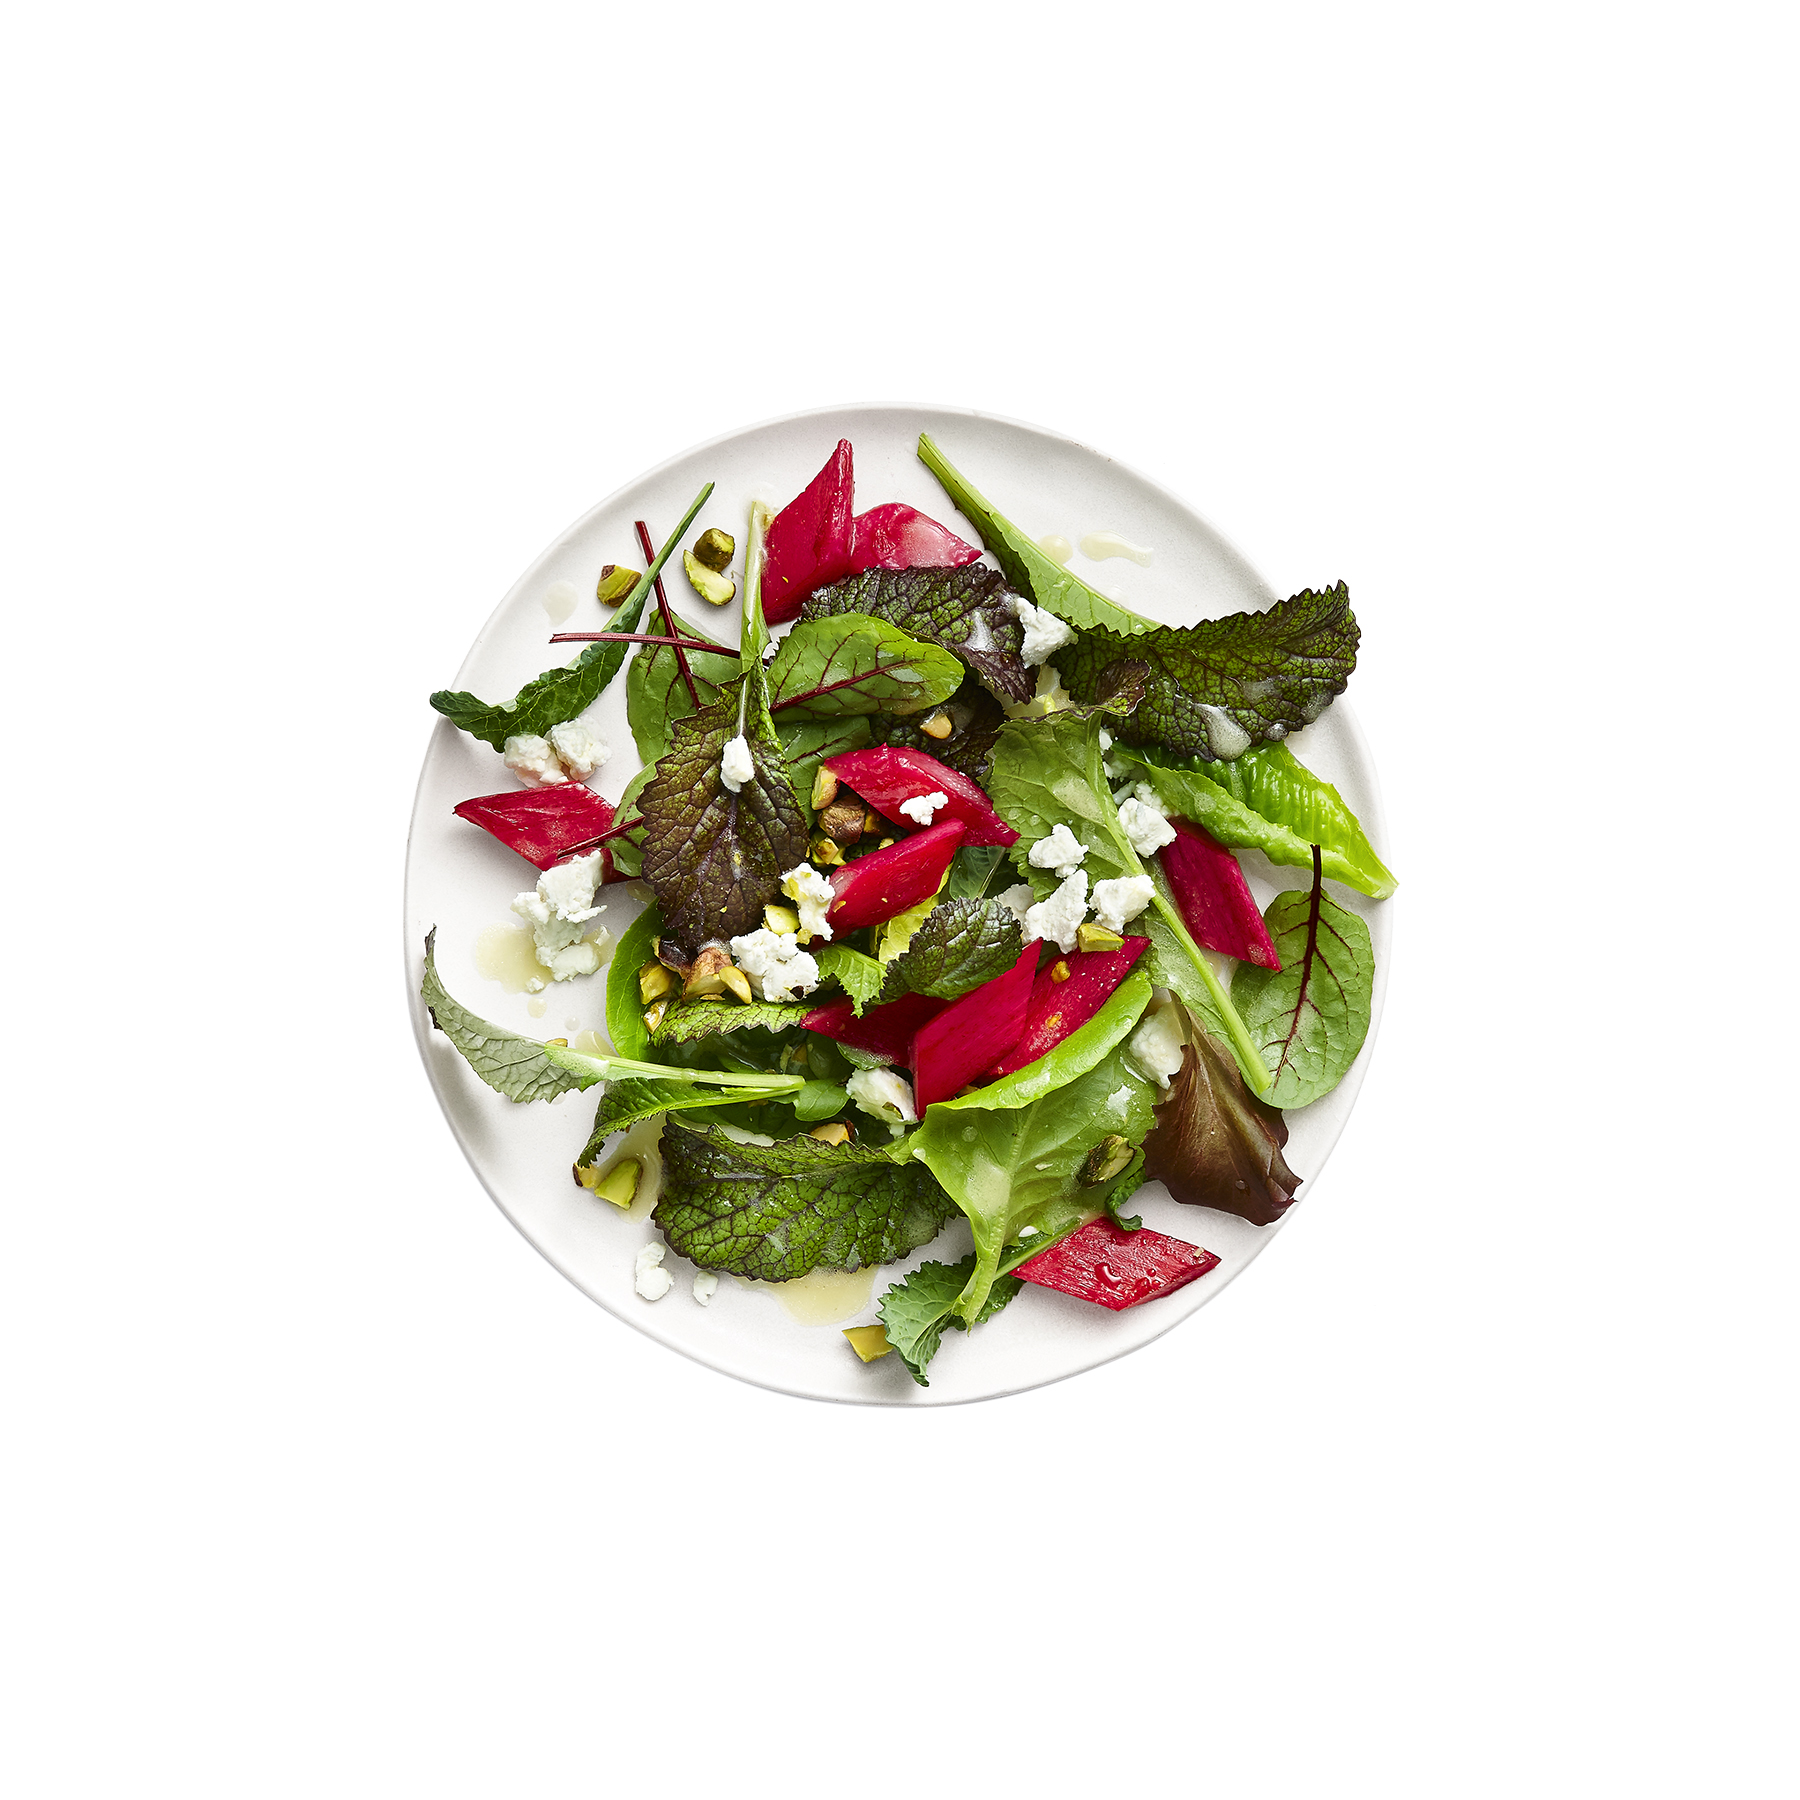 Roasted Rhubarb Salad With Goat Cheese and Pistachios